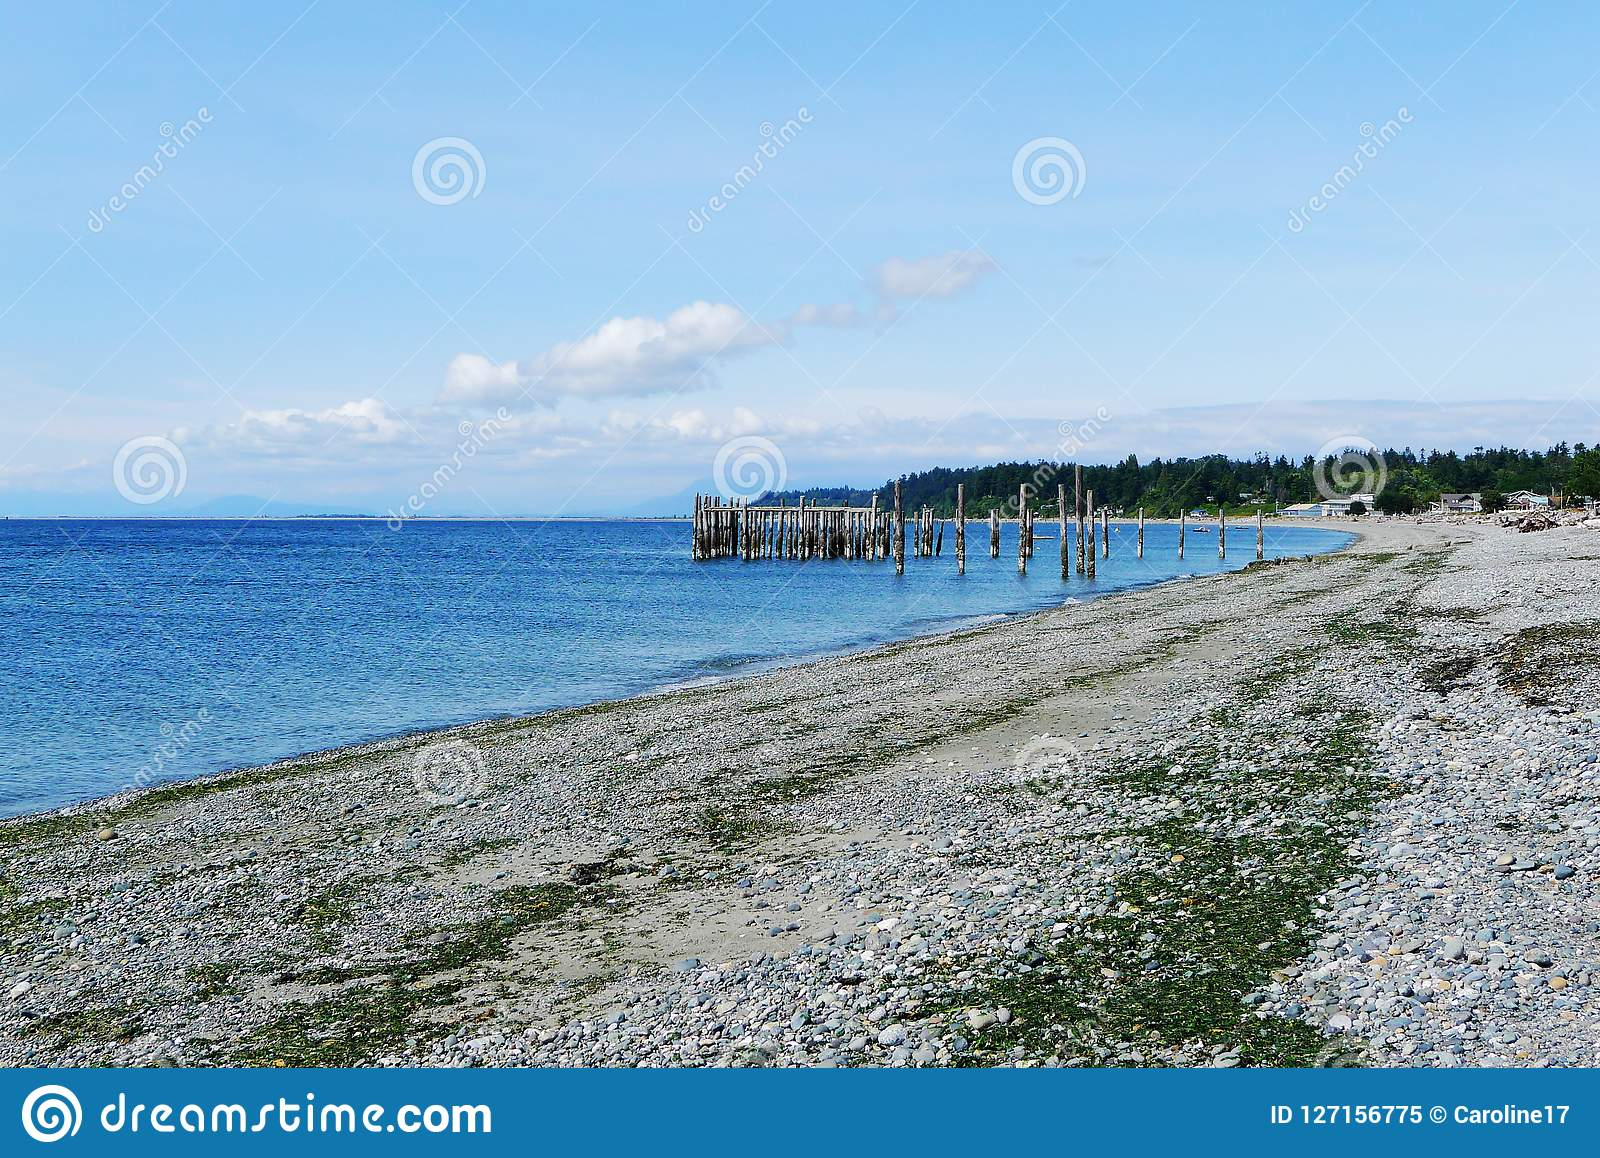 Beach View Of Whatcom County Park Stock Image  Image Of